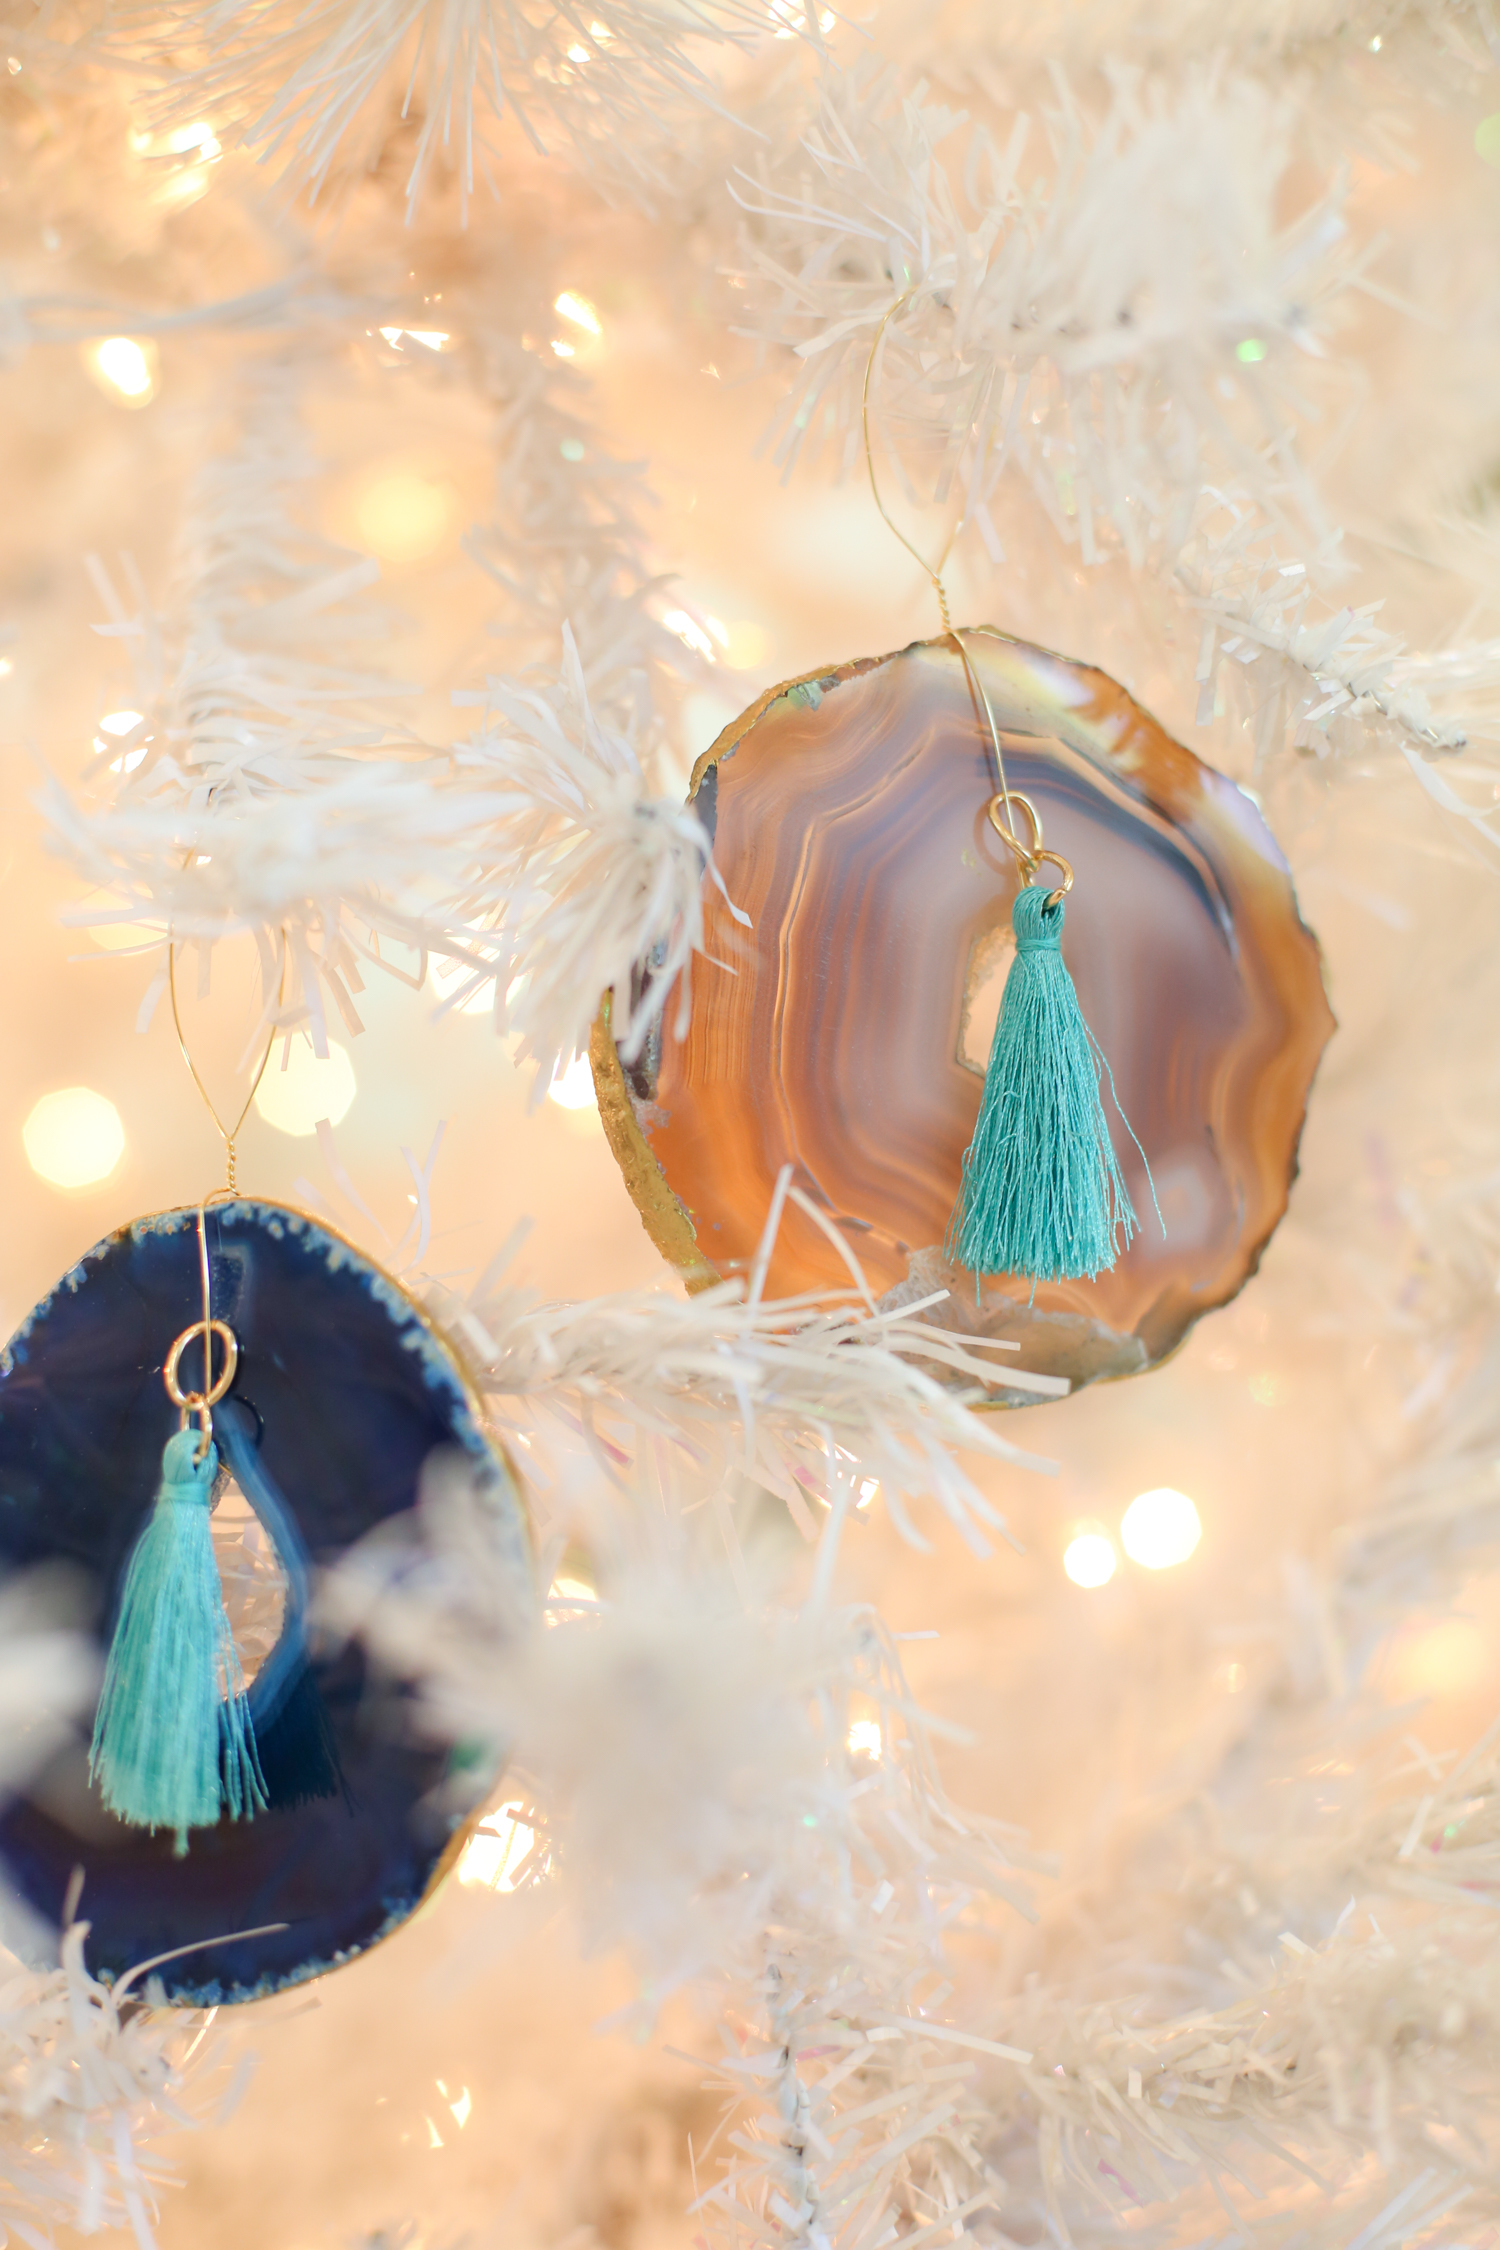 Agate ornaments hanging on a tree